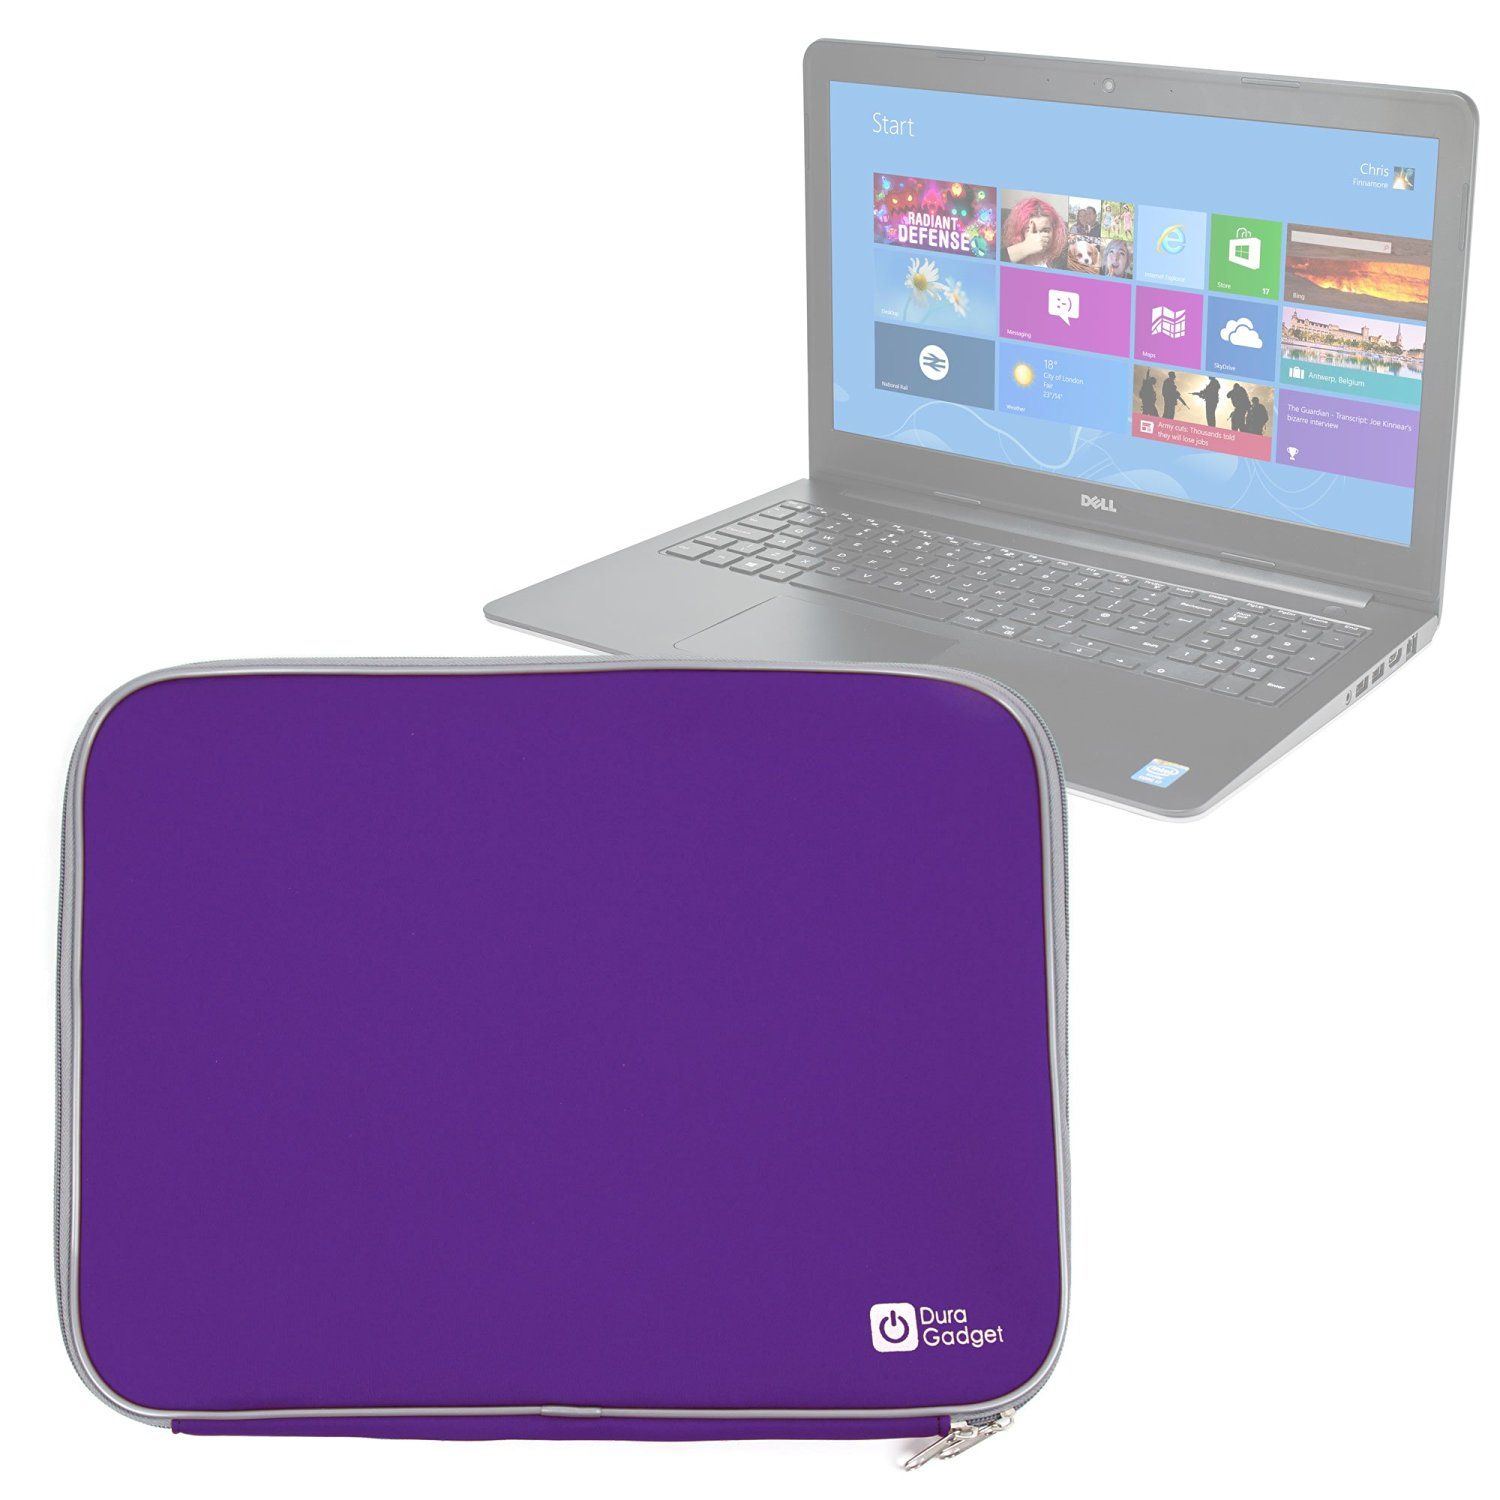 "DURAGADGET Shock Proof & Water Resistant Purple Neoprene Laptop Case For Dell Inspiron 15 7000 Series, Toshiba Satellite P50-AST2NX1, PC Specialist 15.6"" UltraNote & PC Specialist 15.6"" Genesis IV"